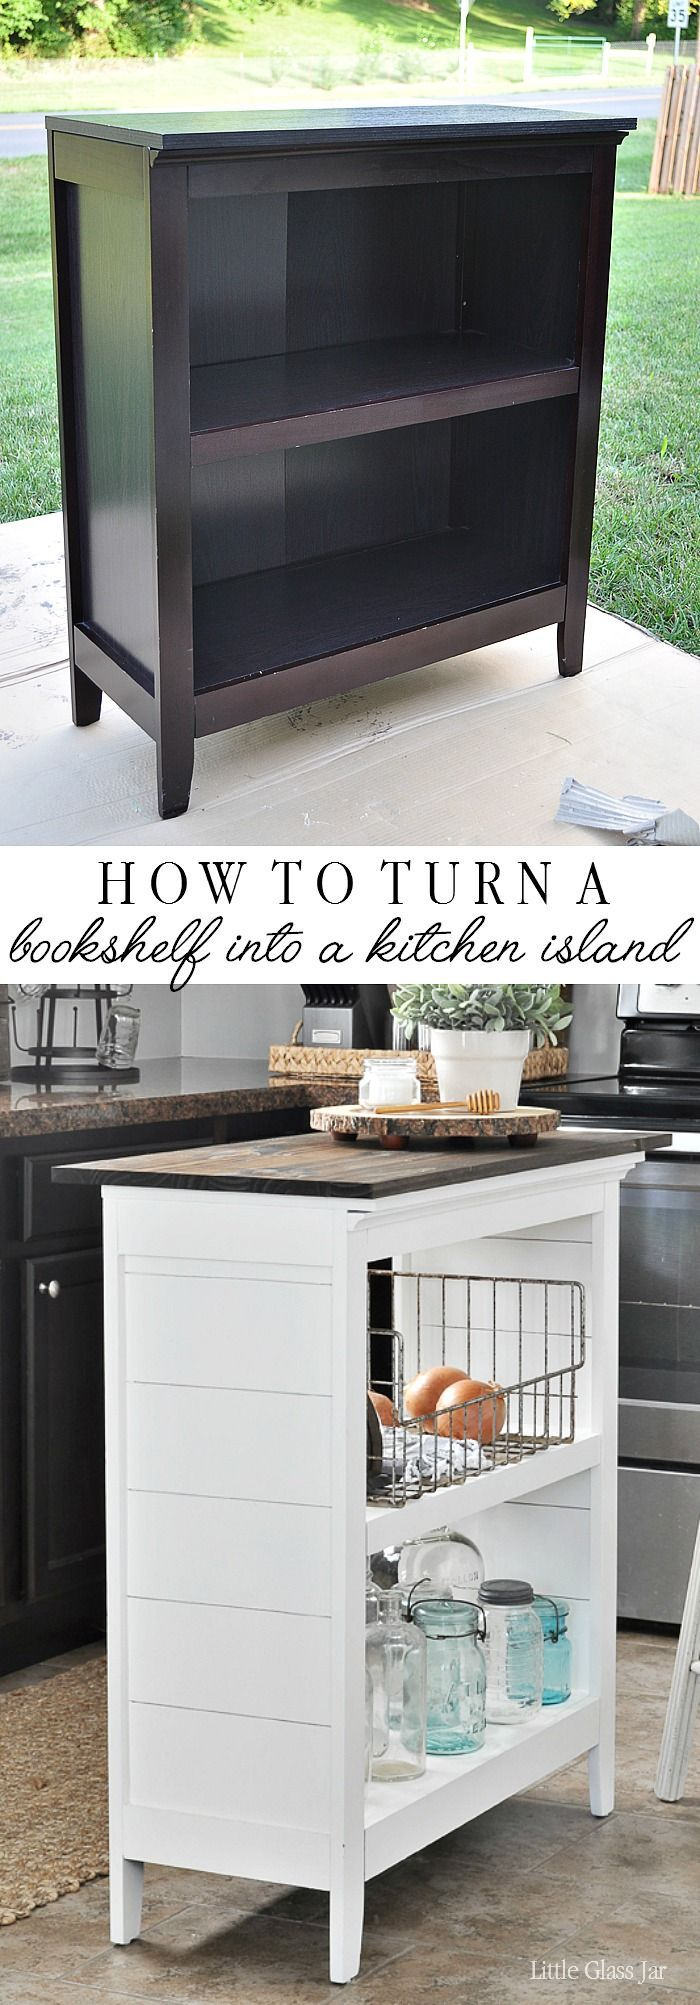 Bookshelf Kitchen Island | Clever, Tutorials and Kitchens